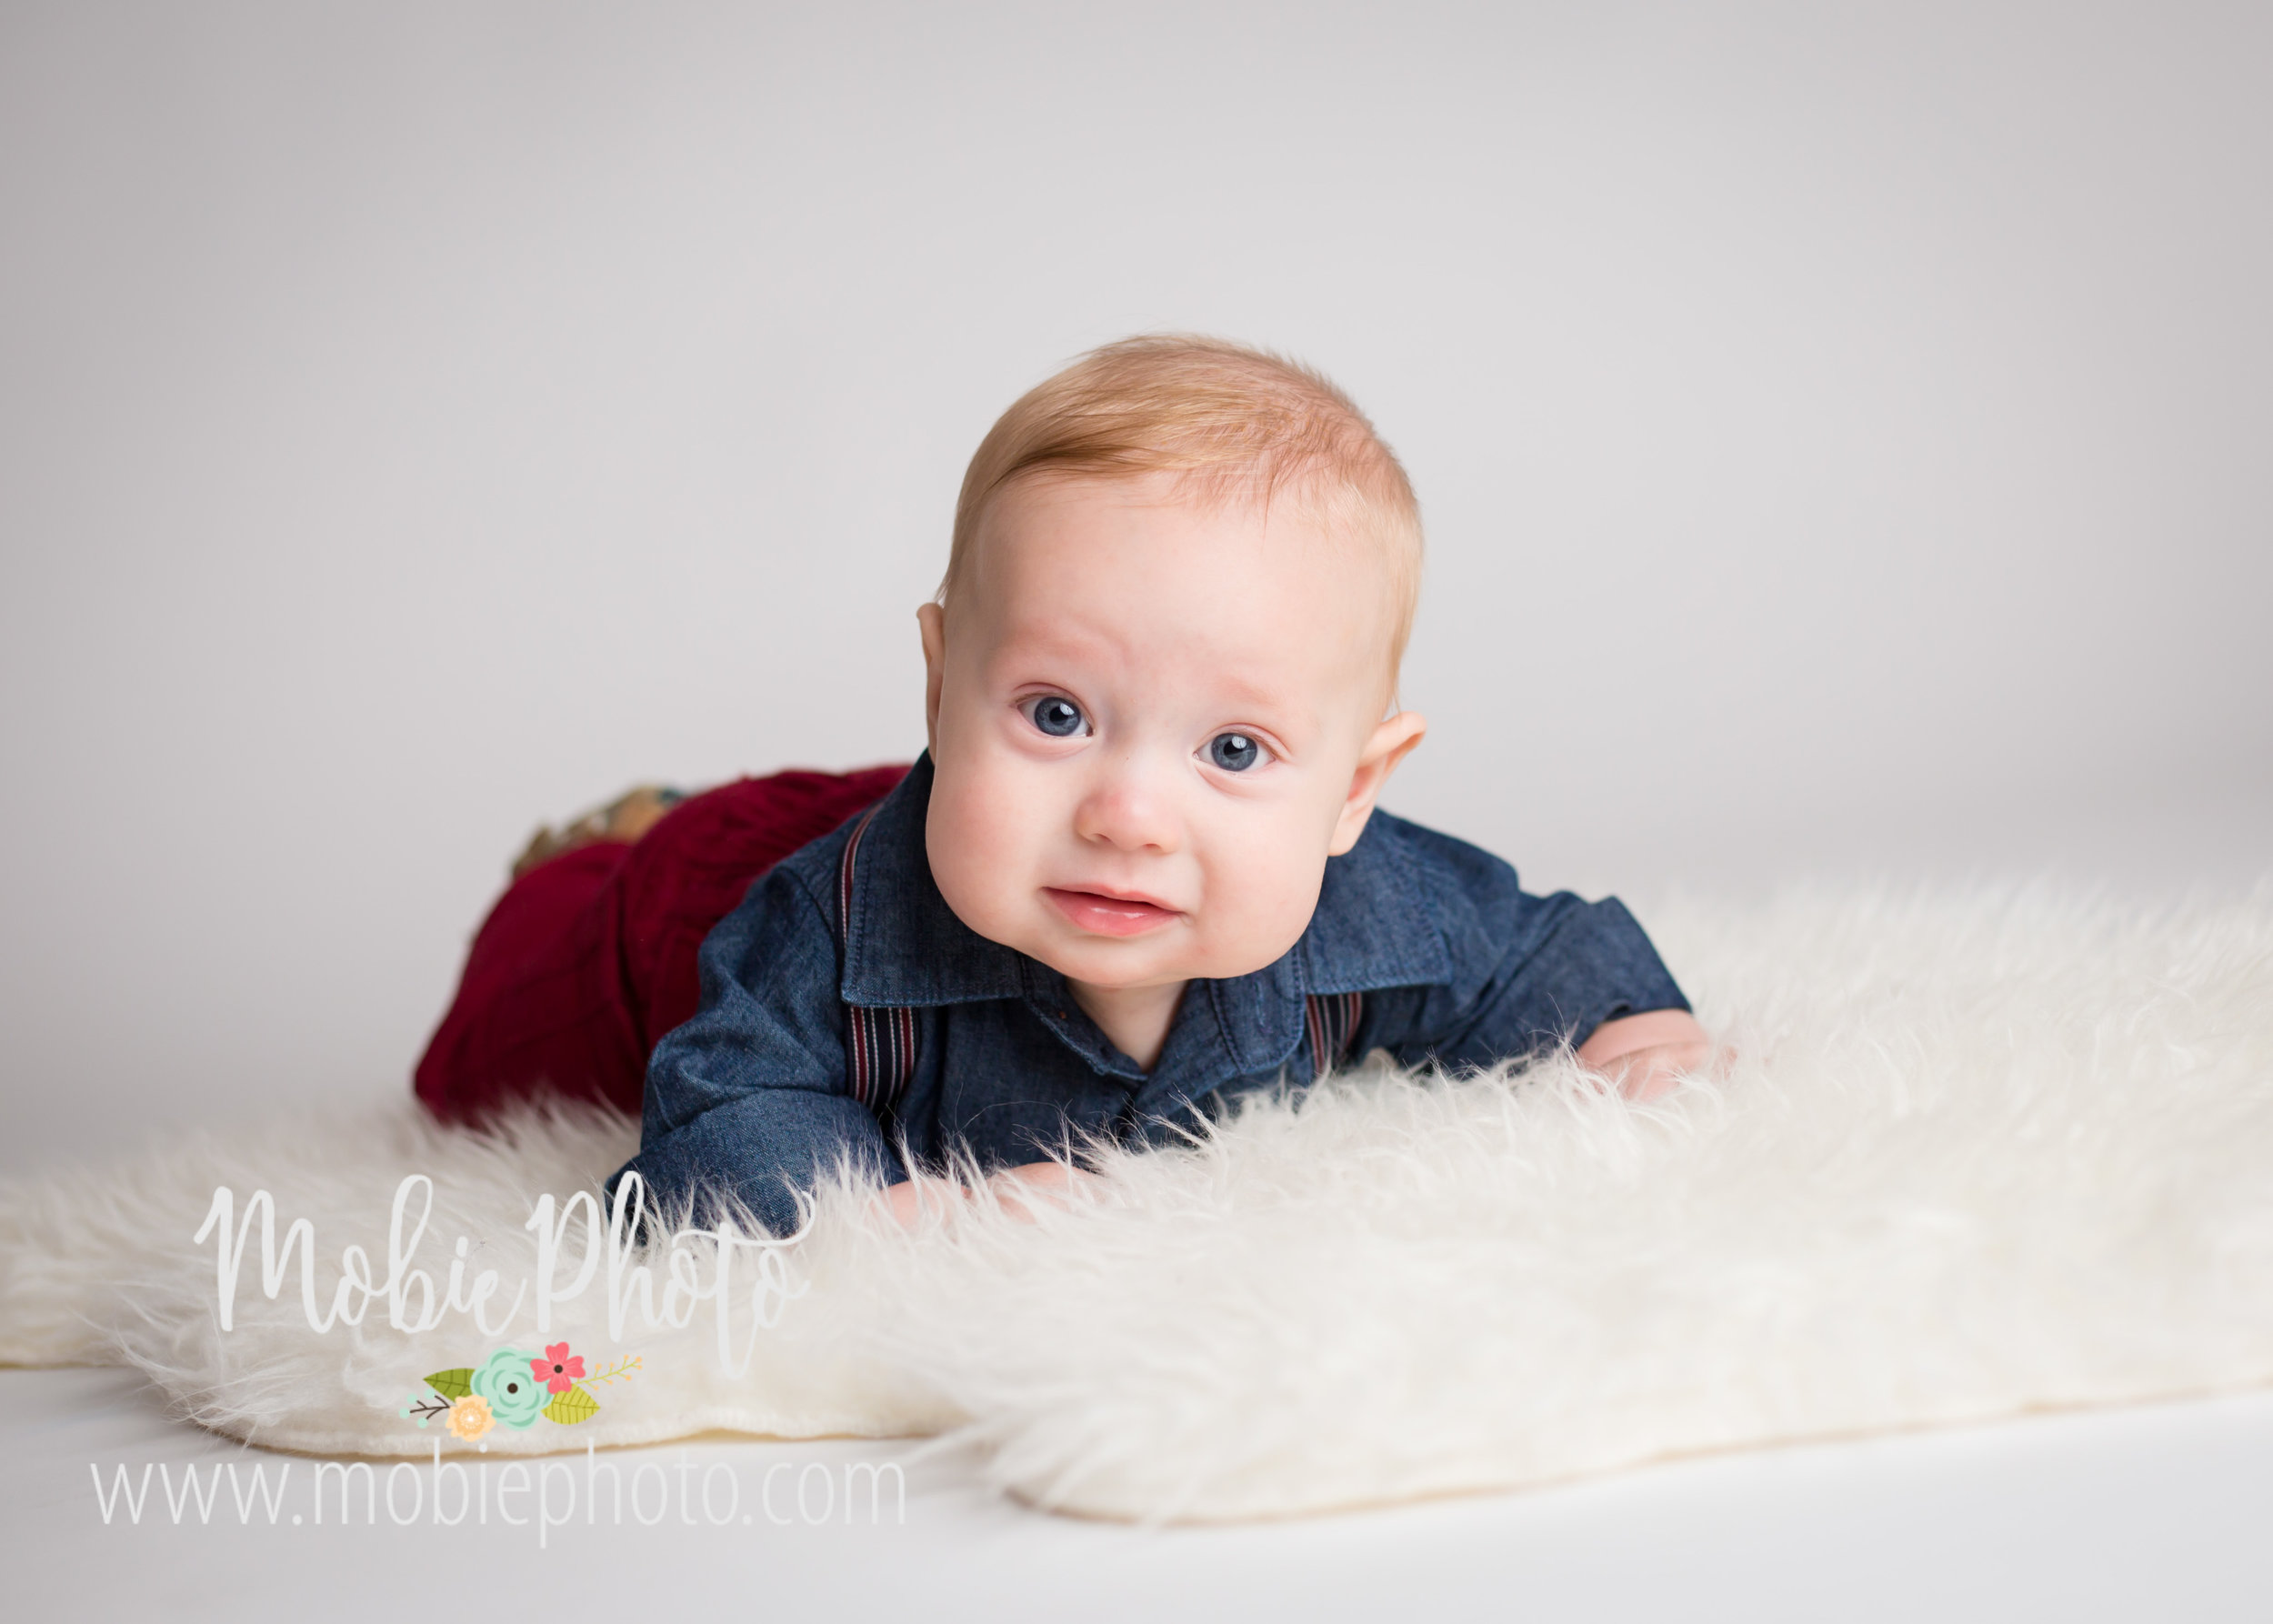 Mobie Photo - Utah Newborn Photographer - Lehi, Utah